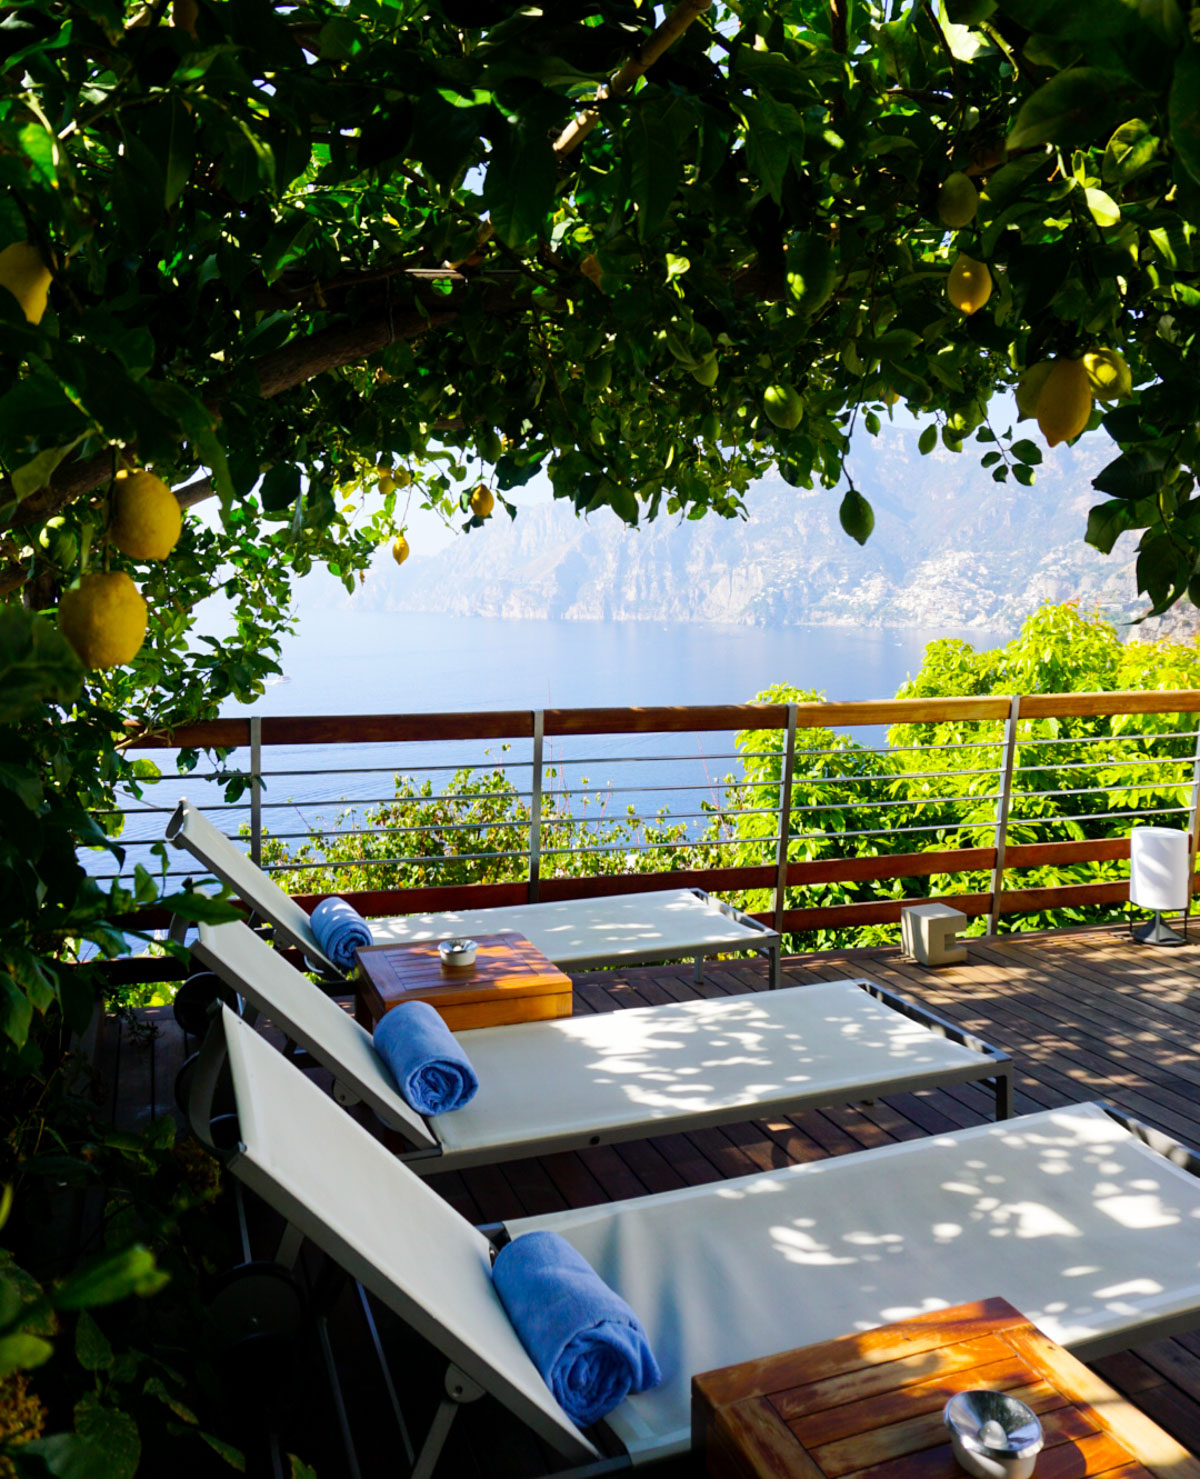 travel-to-italy-tips-with-Addie-Bell_Amalfi Coast-1710.jpg